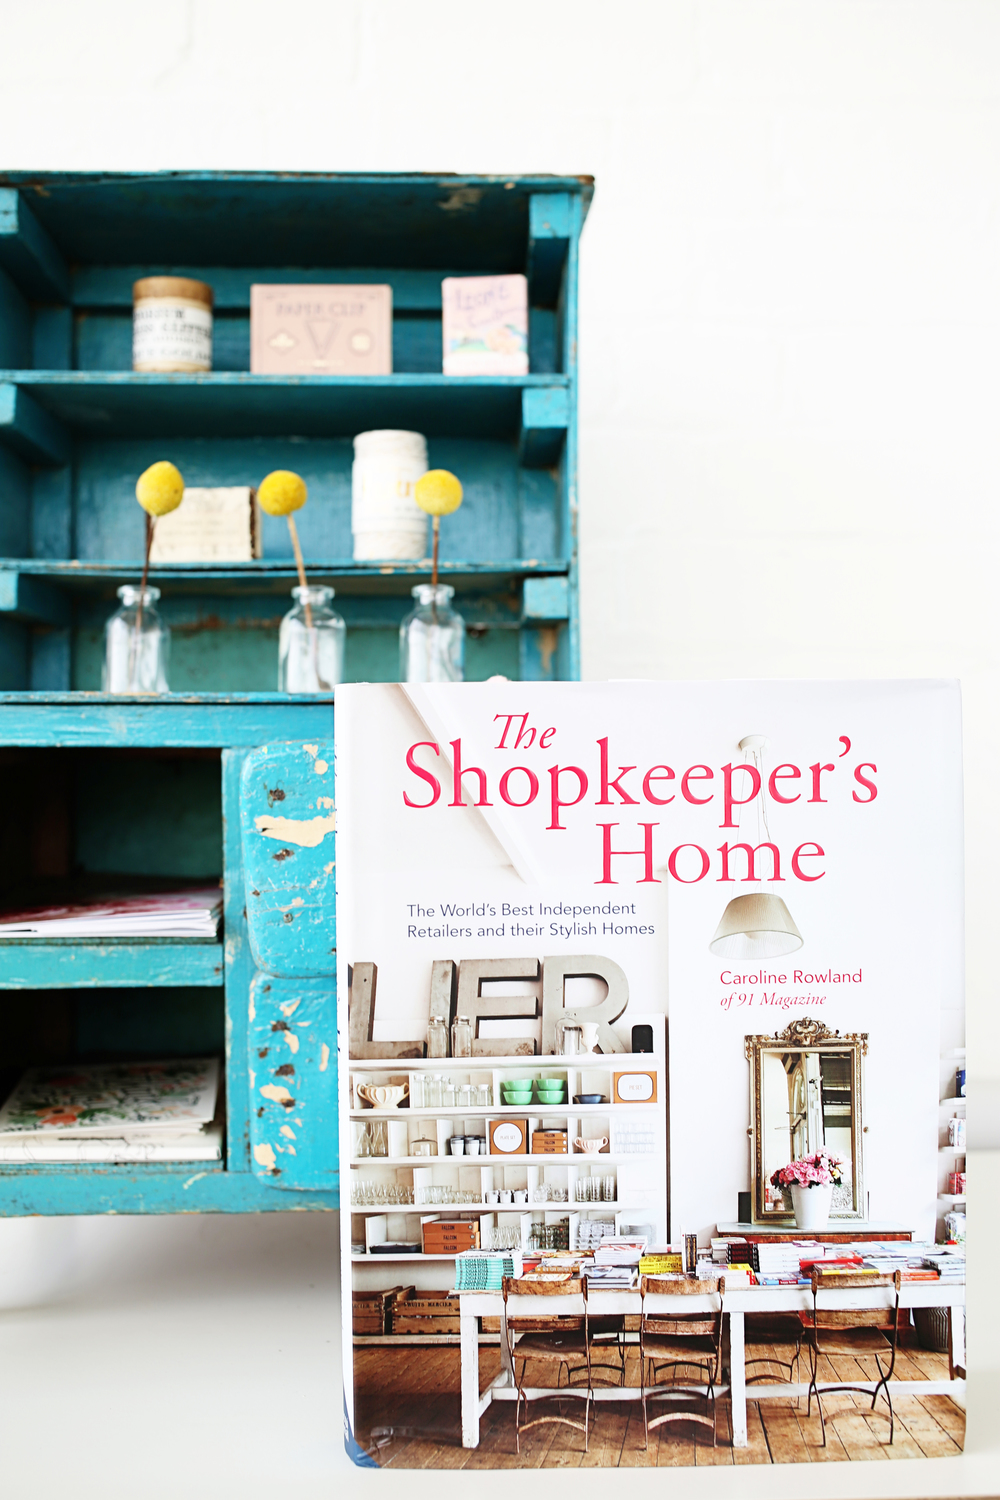 The Shopkeeper's Home Book Review